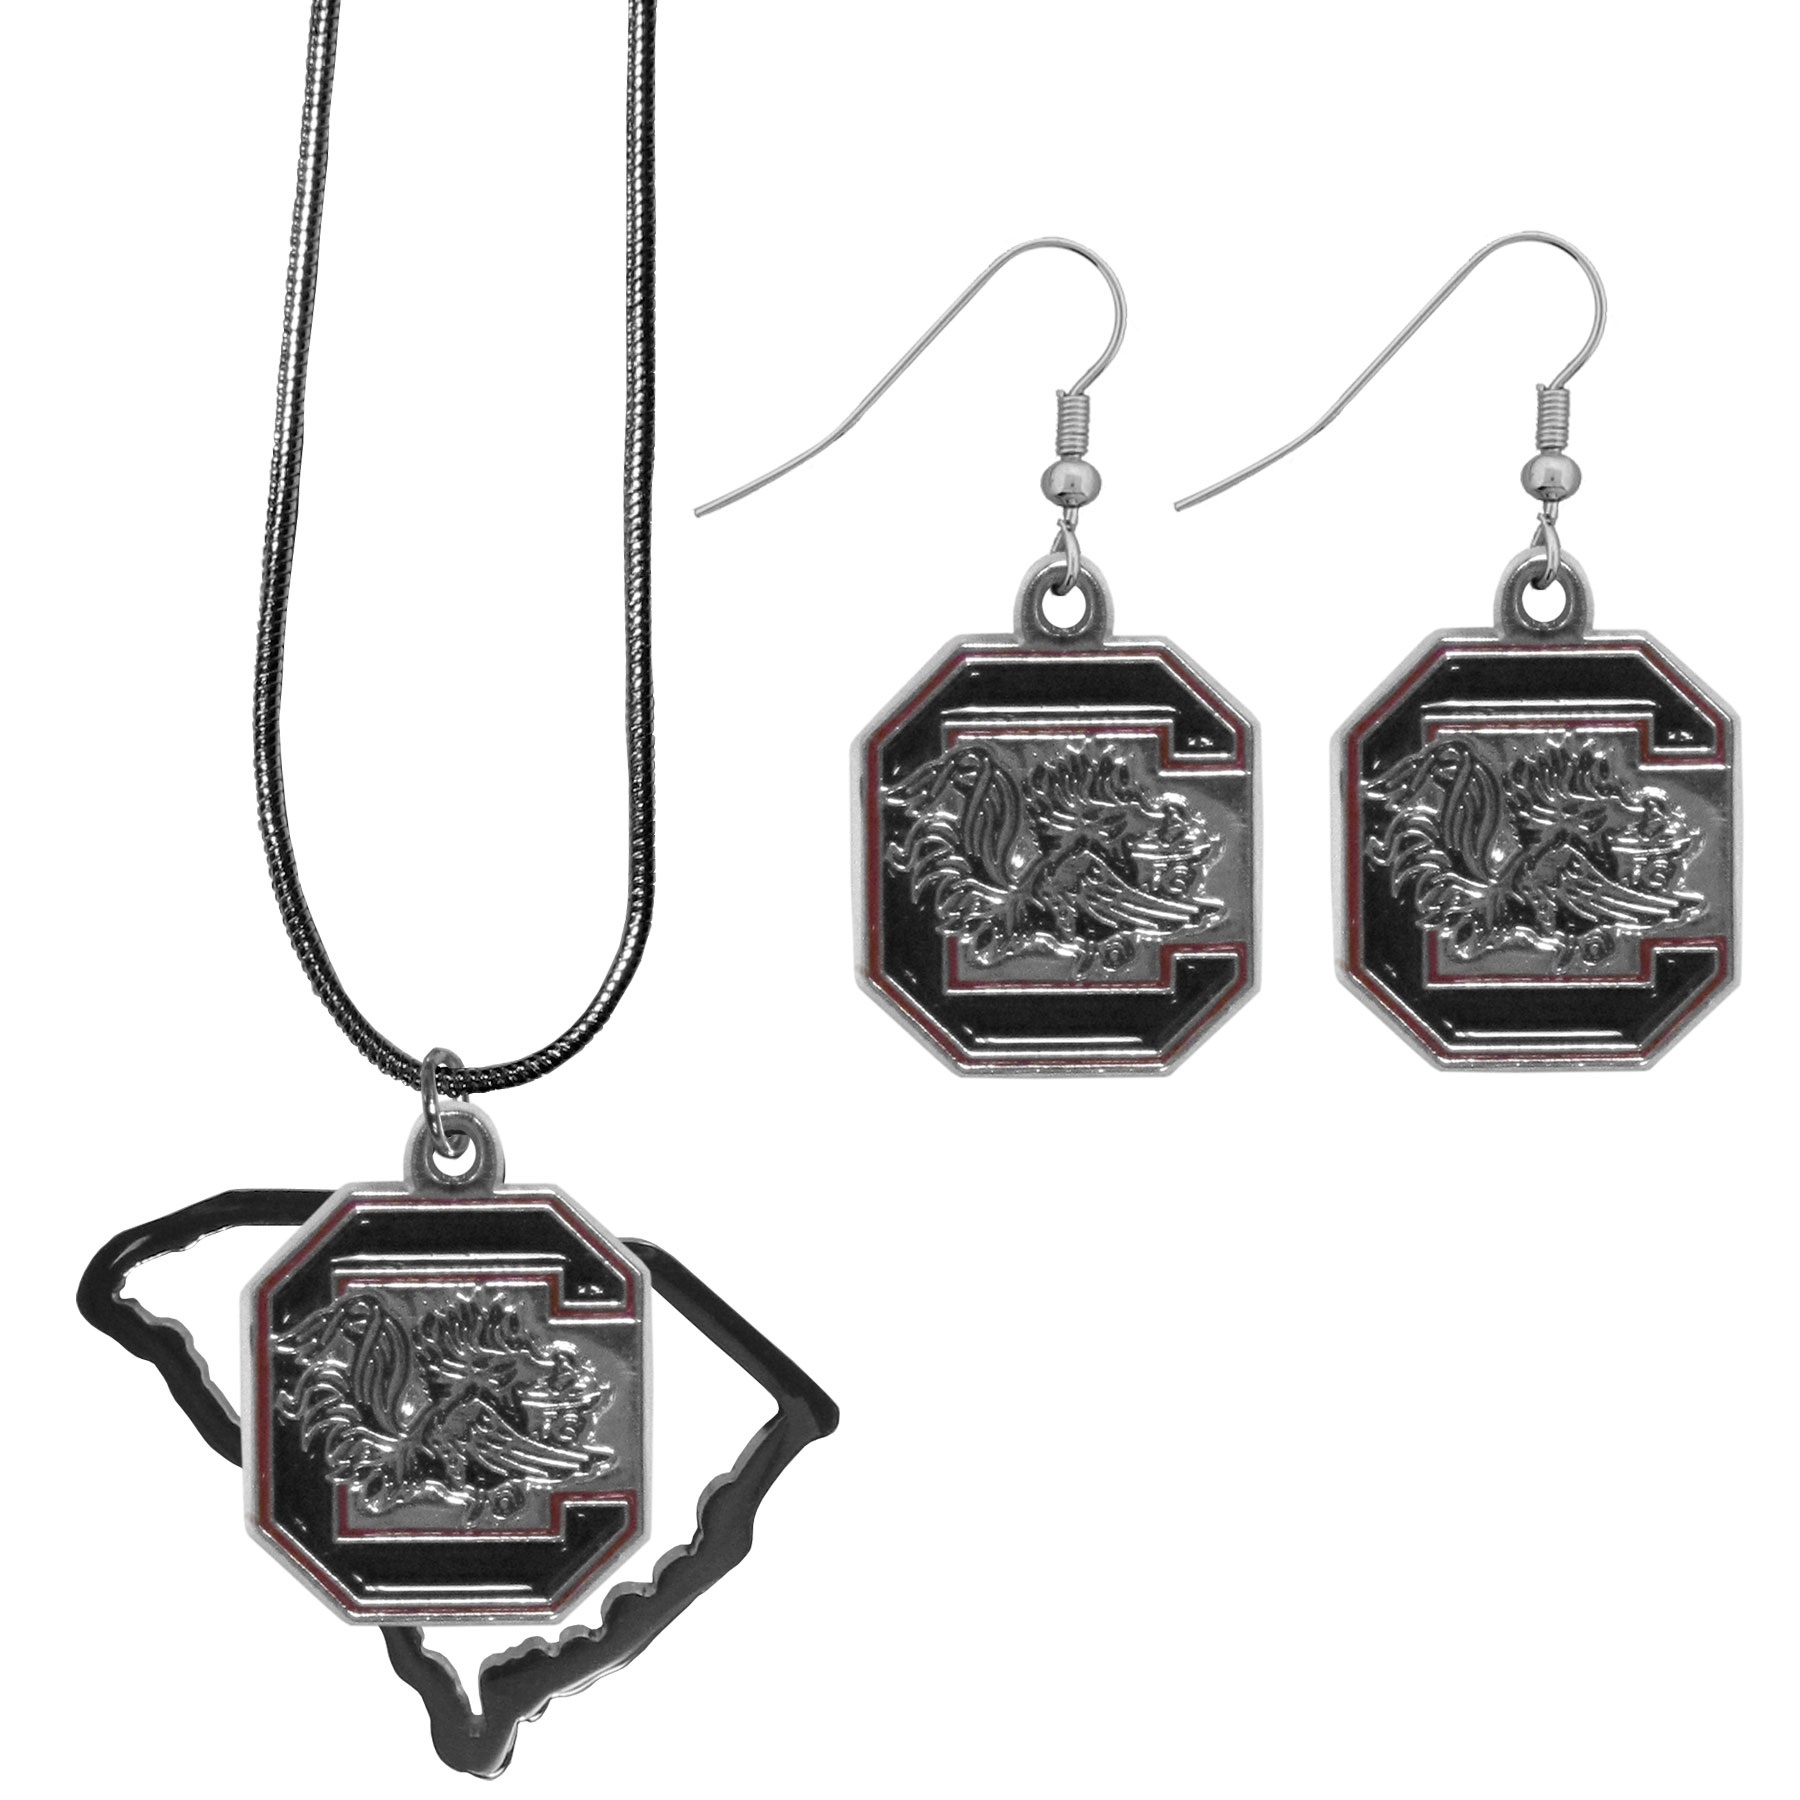 S. Carolina Gamecocks Dangle Earrings and State Necklace Set - Get in on the trend! State themes are a trend that just keeps getting more popular and this jewelry set takes the state style and give it a sporty twist with a S. Carolina Gamecocks necklace that features an Arizona state outline charm paired with a beautiful team charm and matching team charm dangle earrings. The earrings feature hypoallergenic fishhook posts that are nickel free.